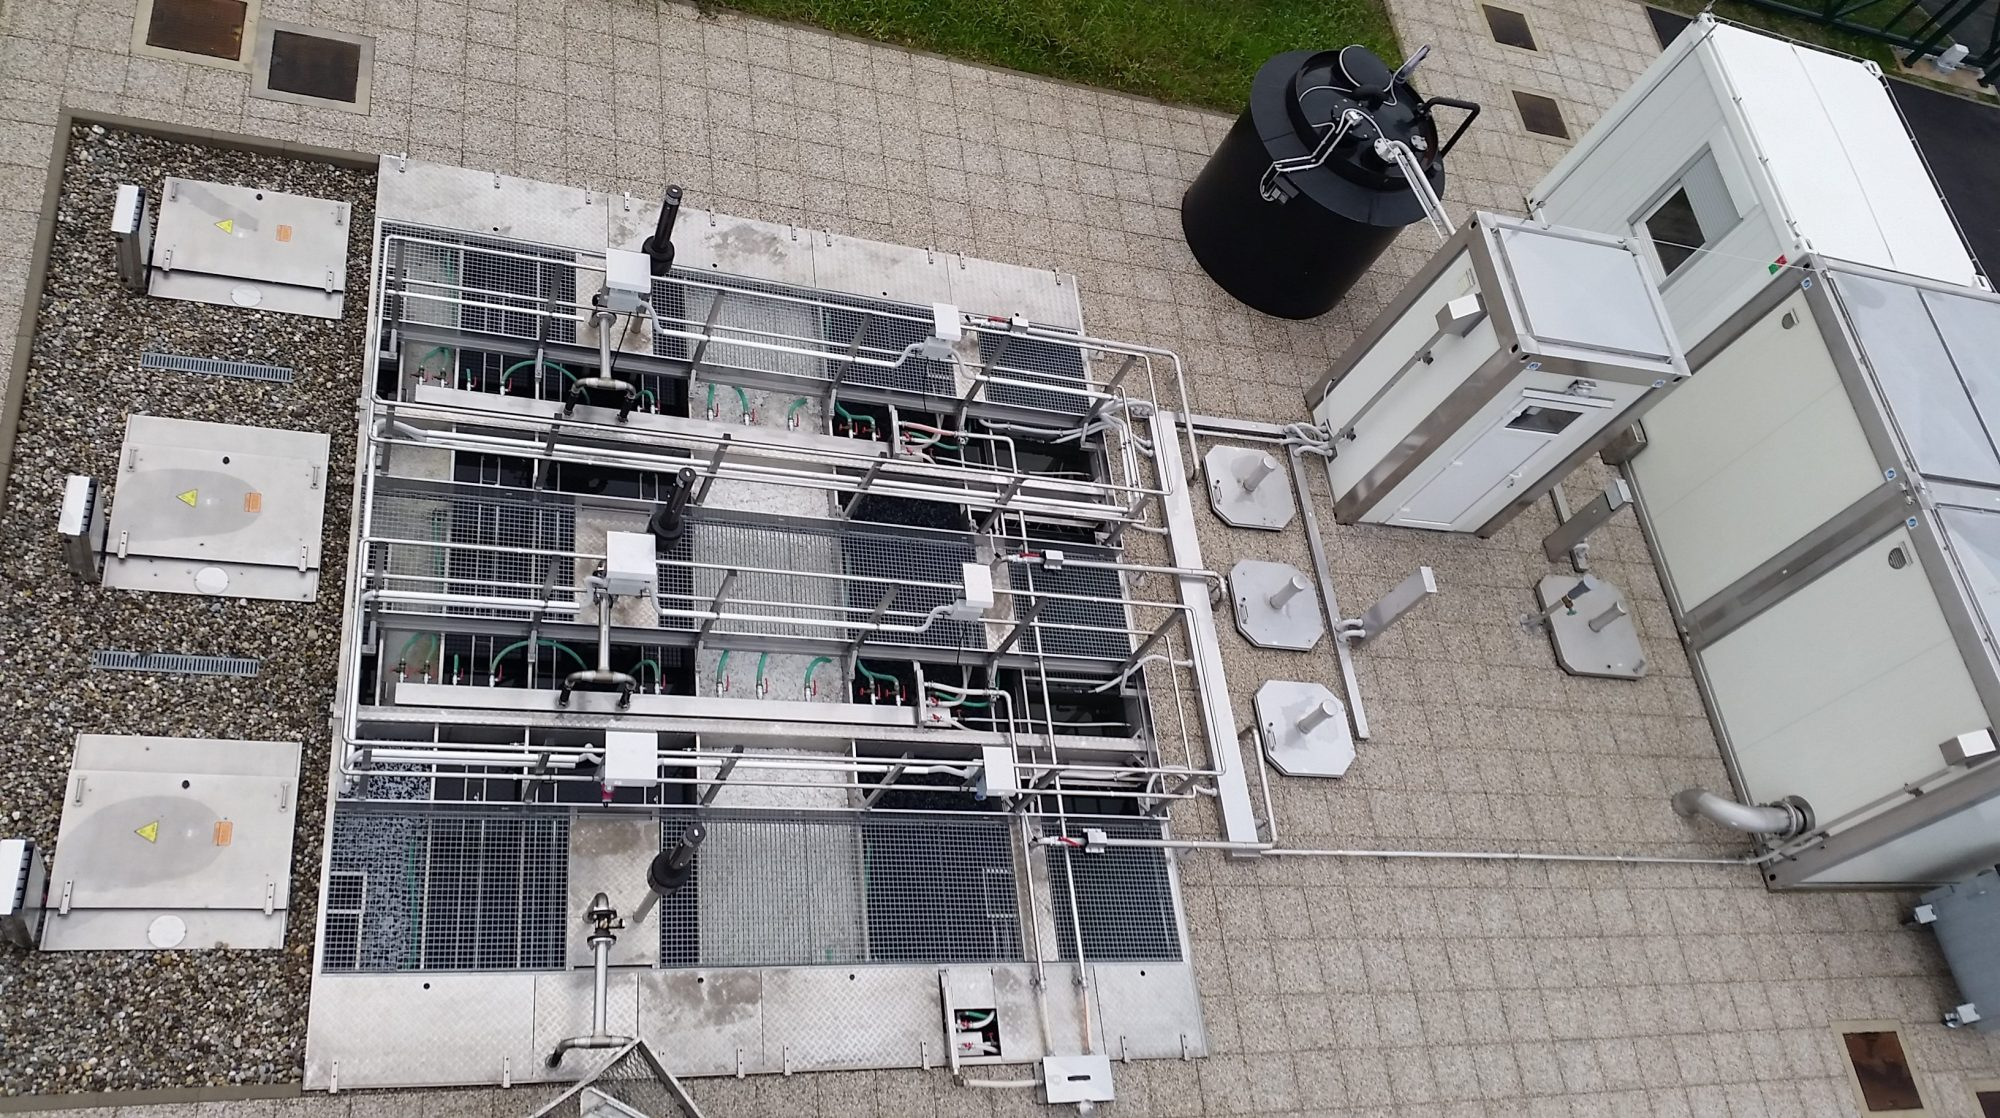 Overhead view of in ground wastewater treatment plant